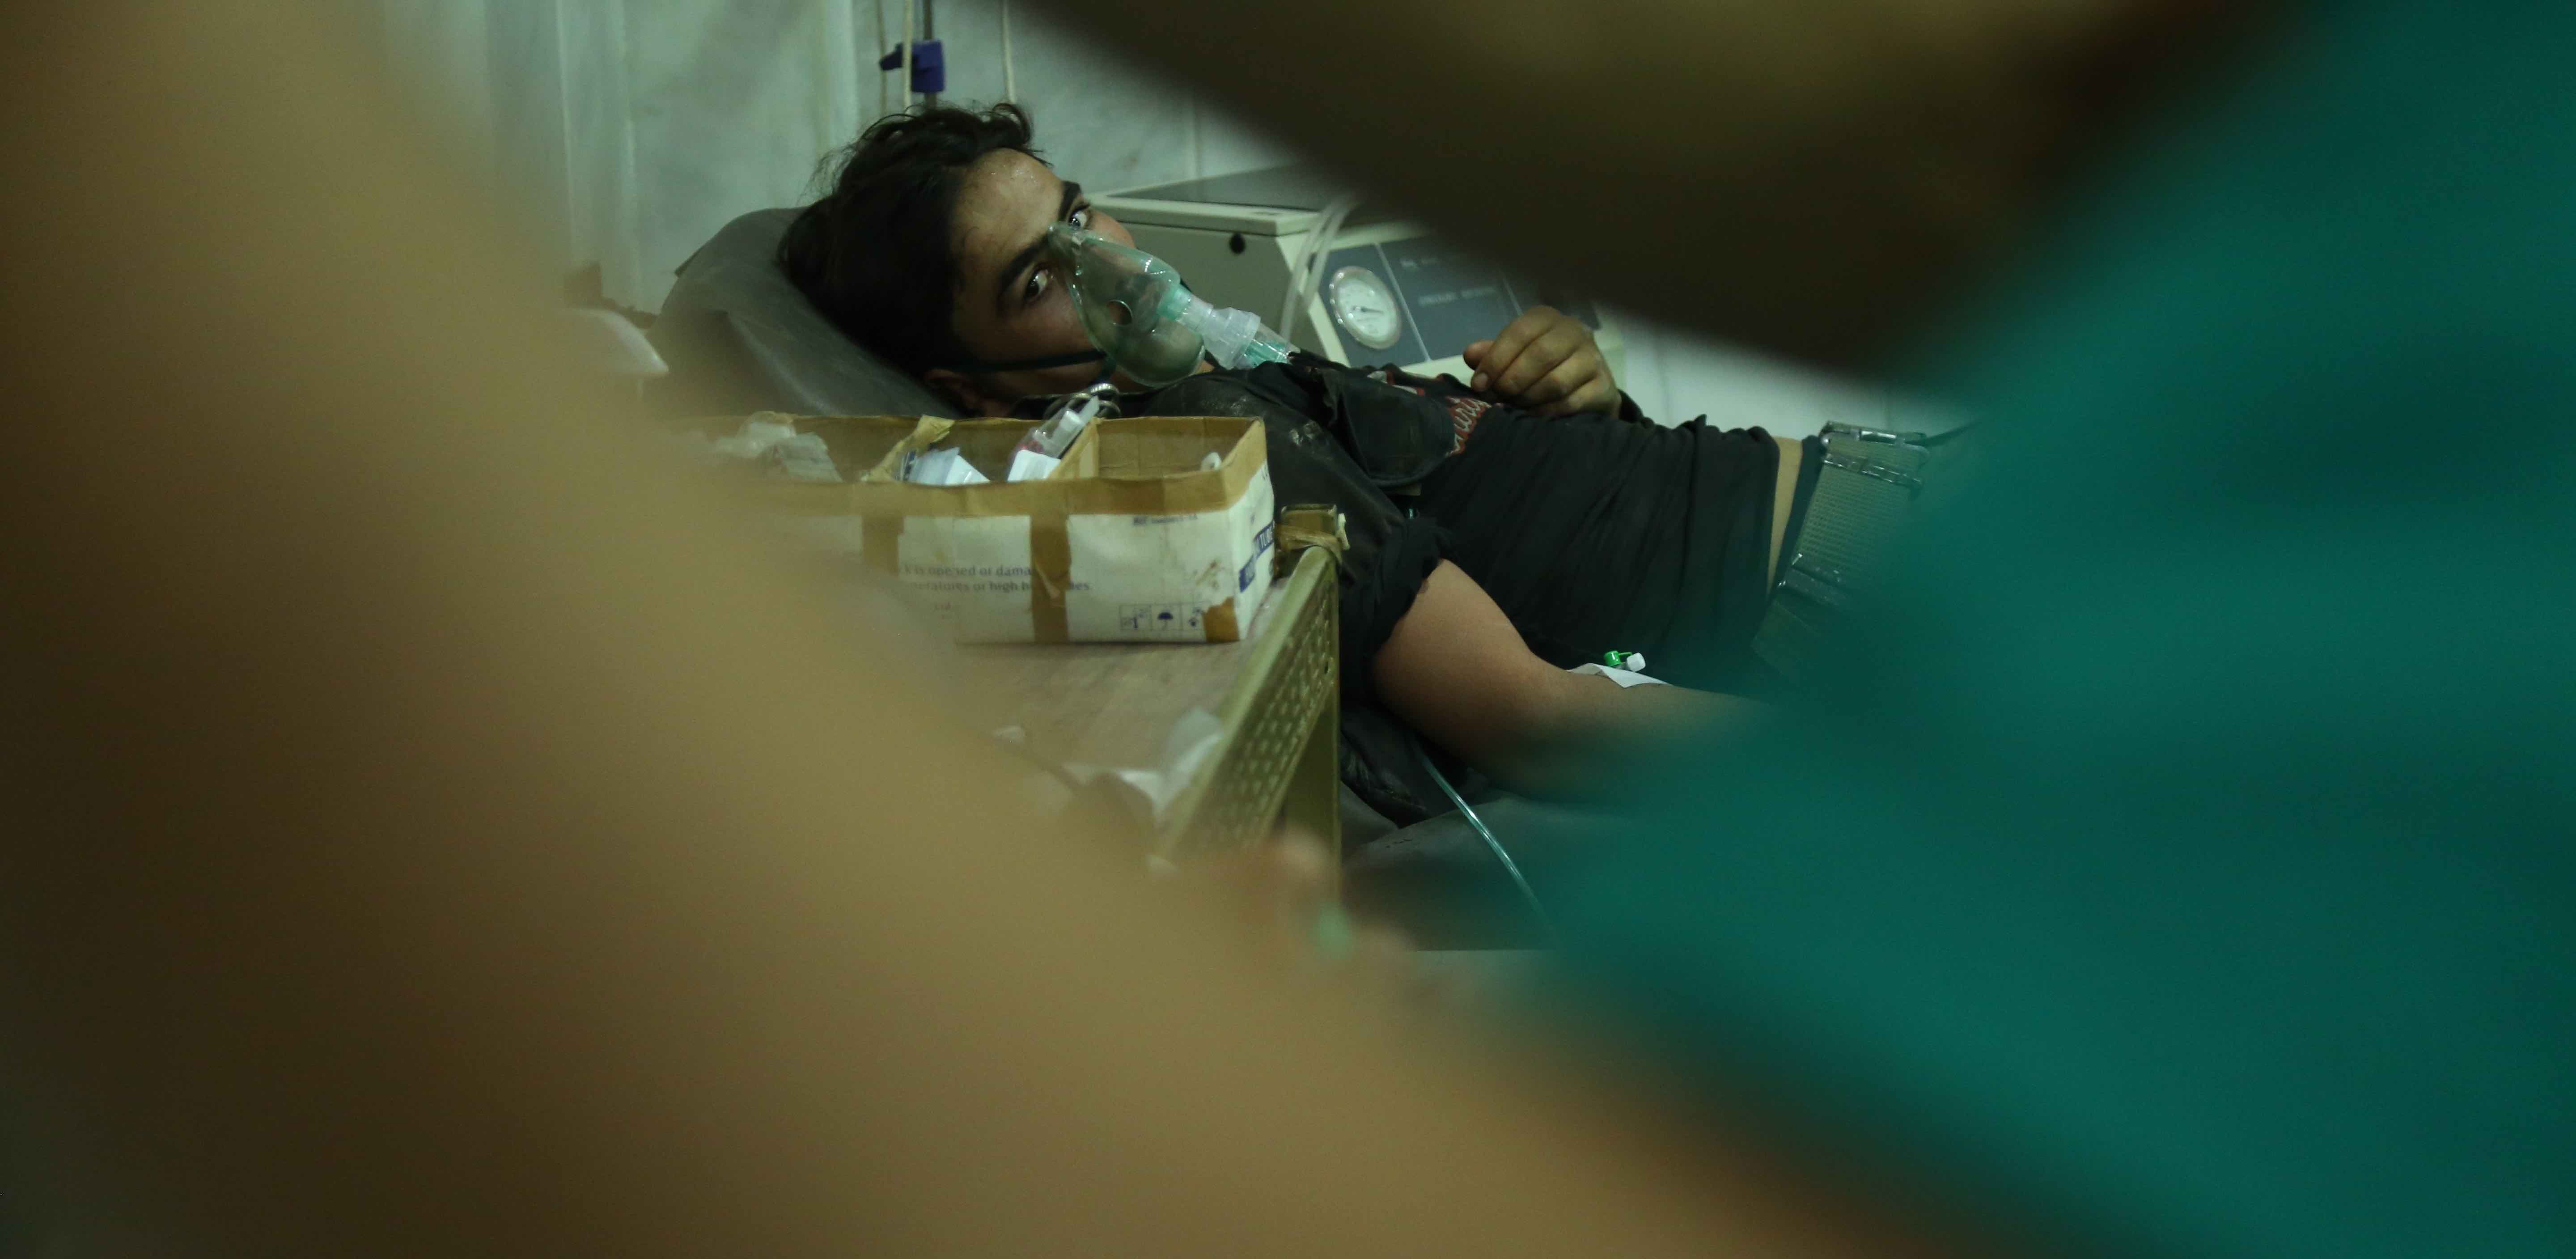 A man receives medical treatment after an Assad regime's alleged chemical gas attack (Photo: Ammar Suleyman/Getty)